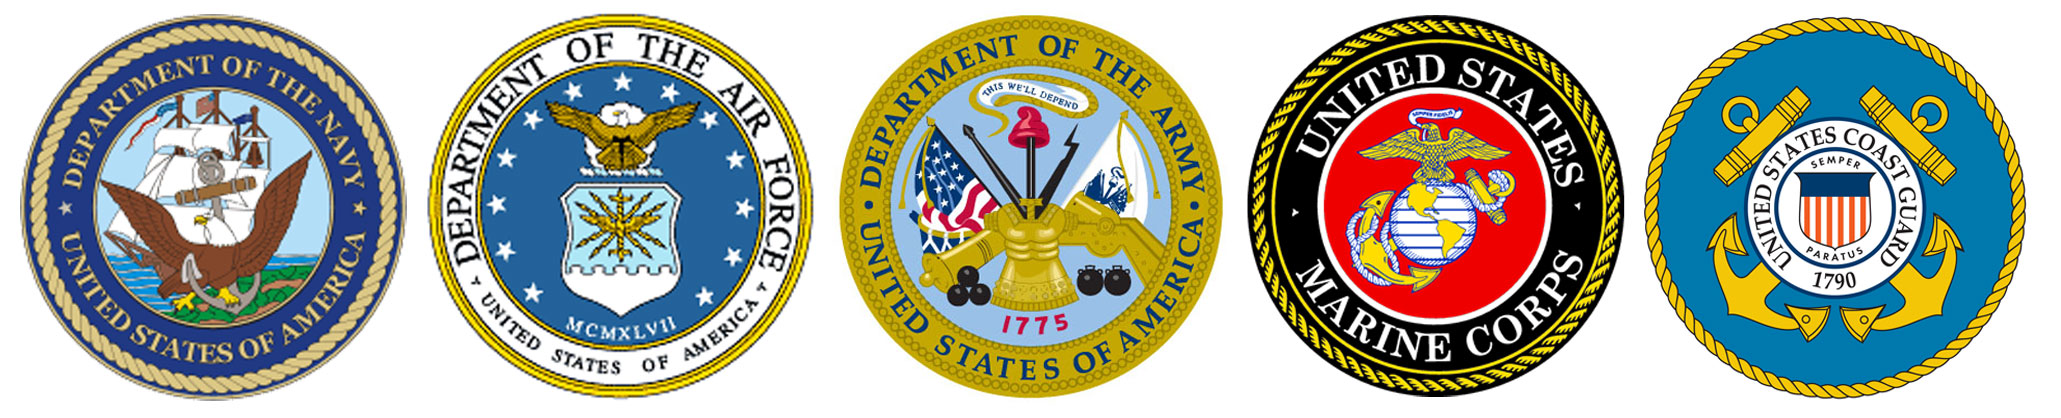 Image result for military logos